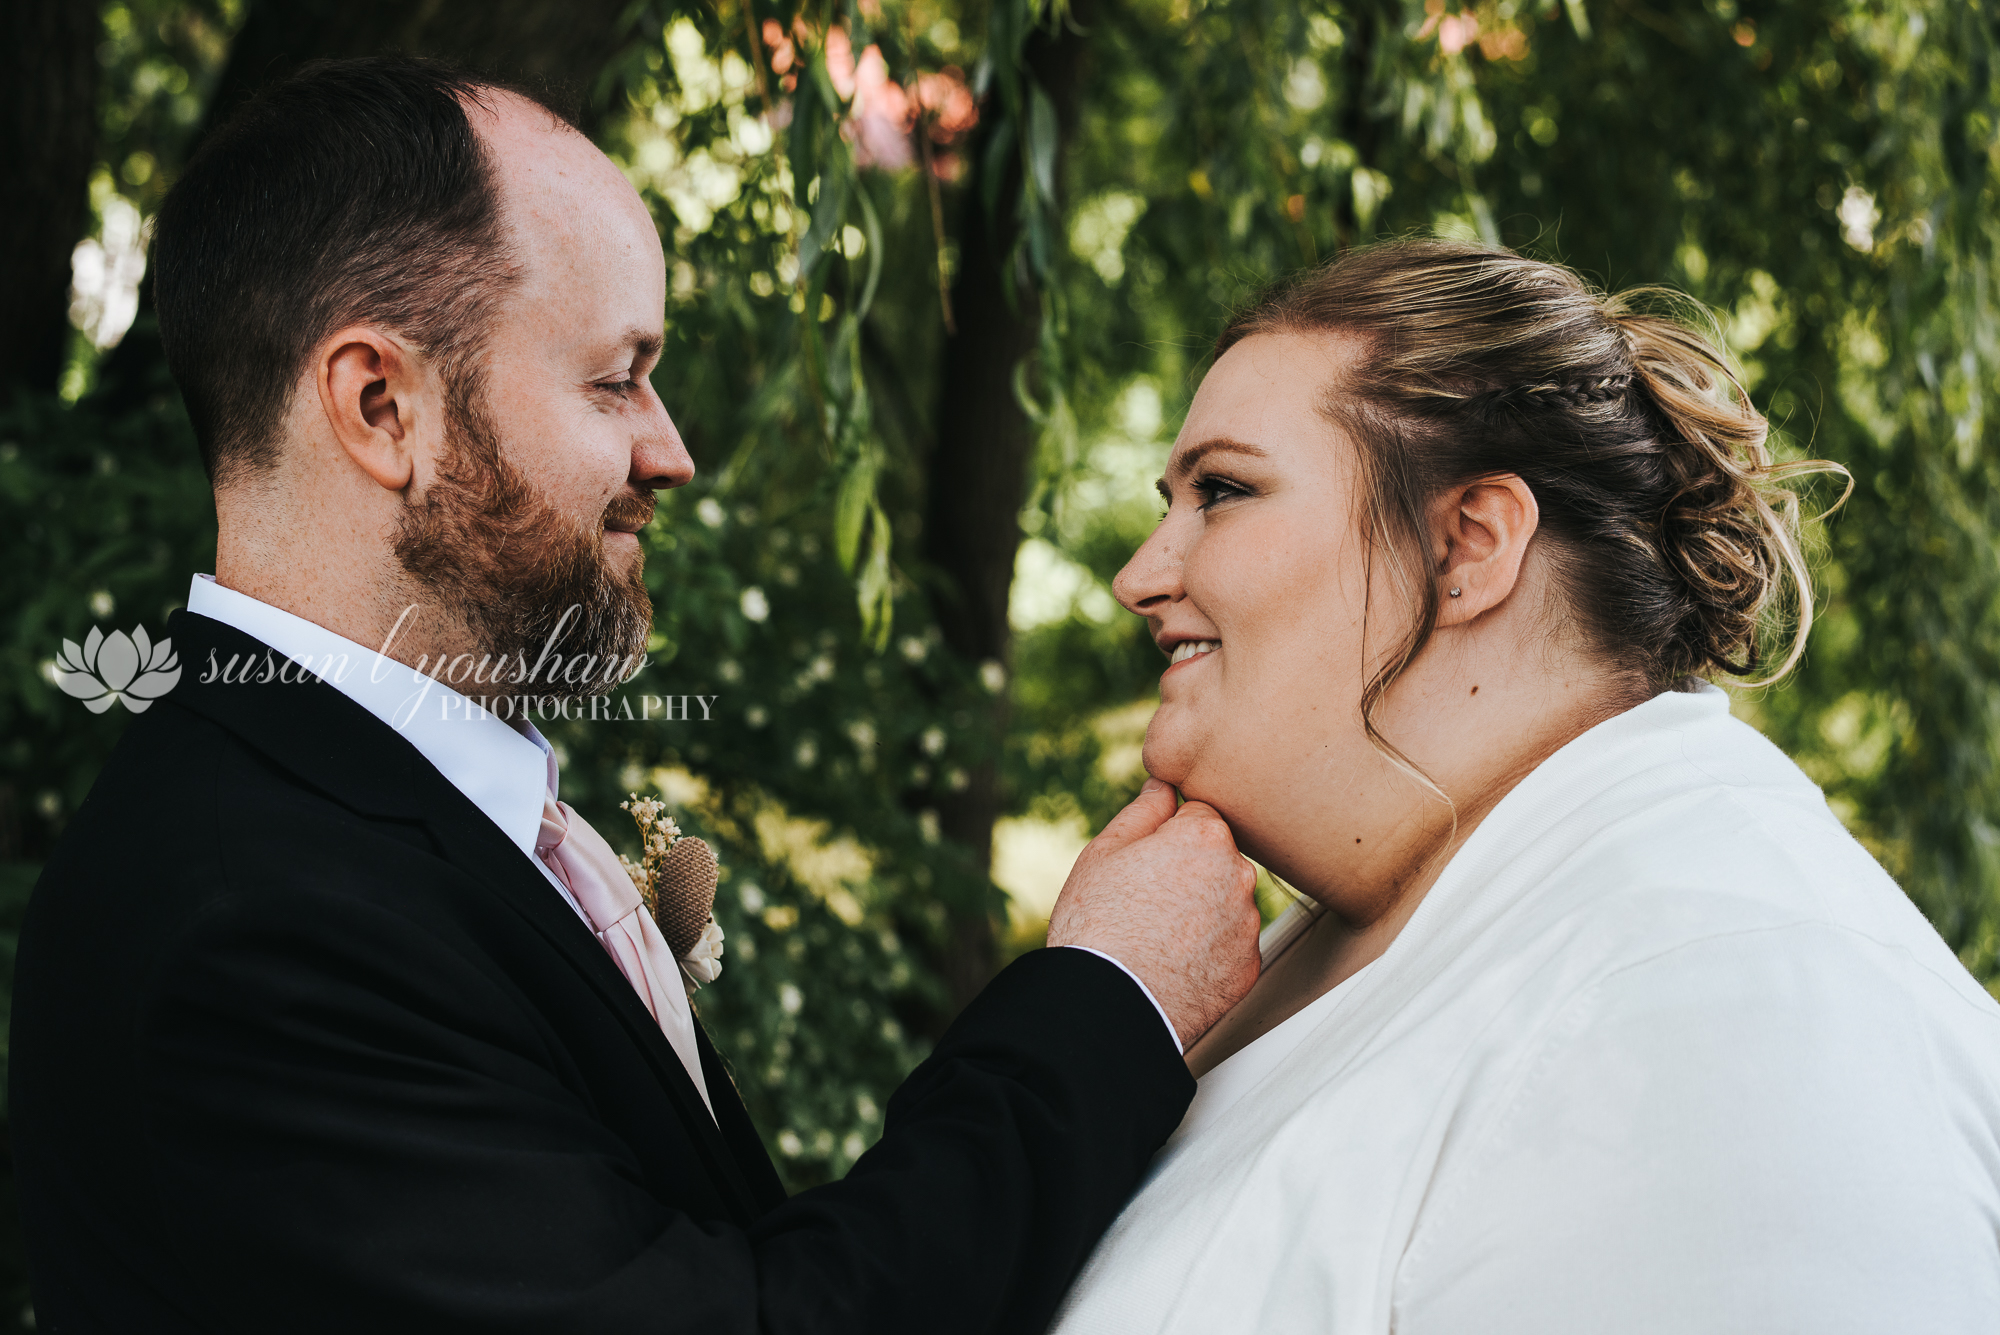 Bill and Sarah Wedding Photos 06-08-2019 SLY Photography -63.jpg